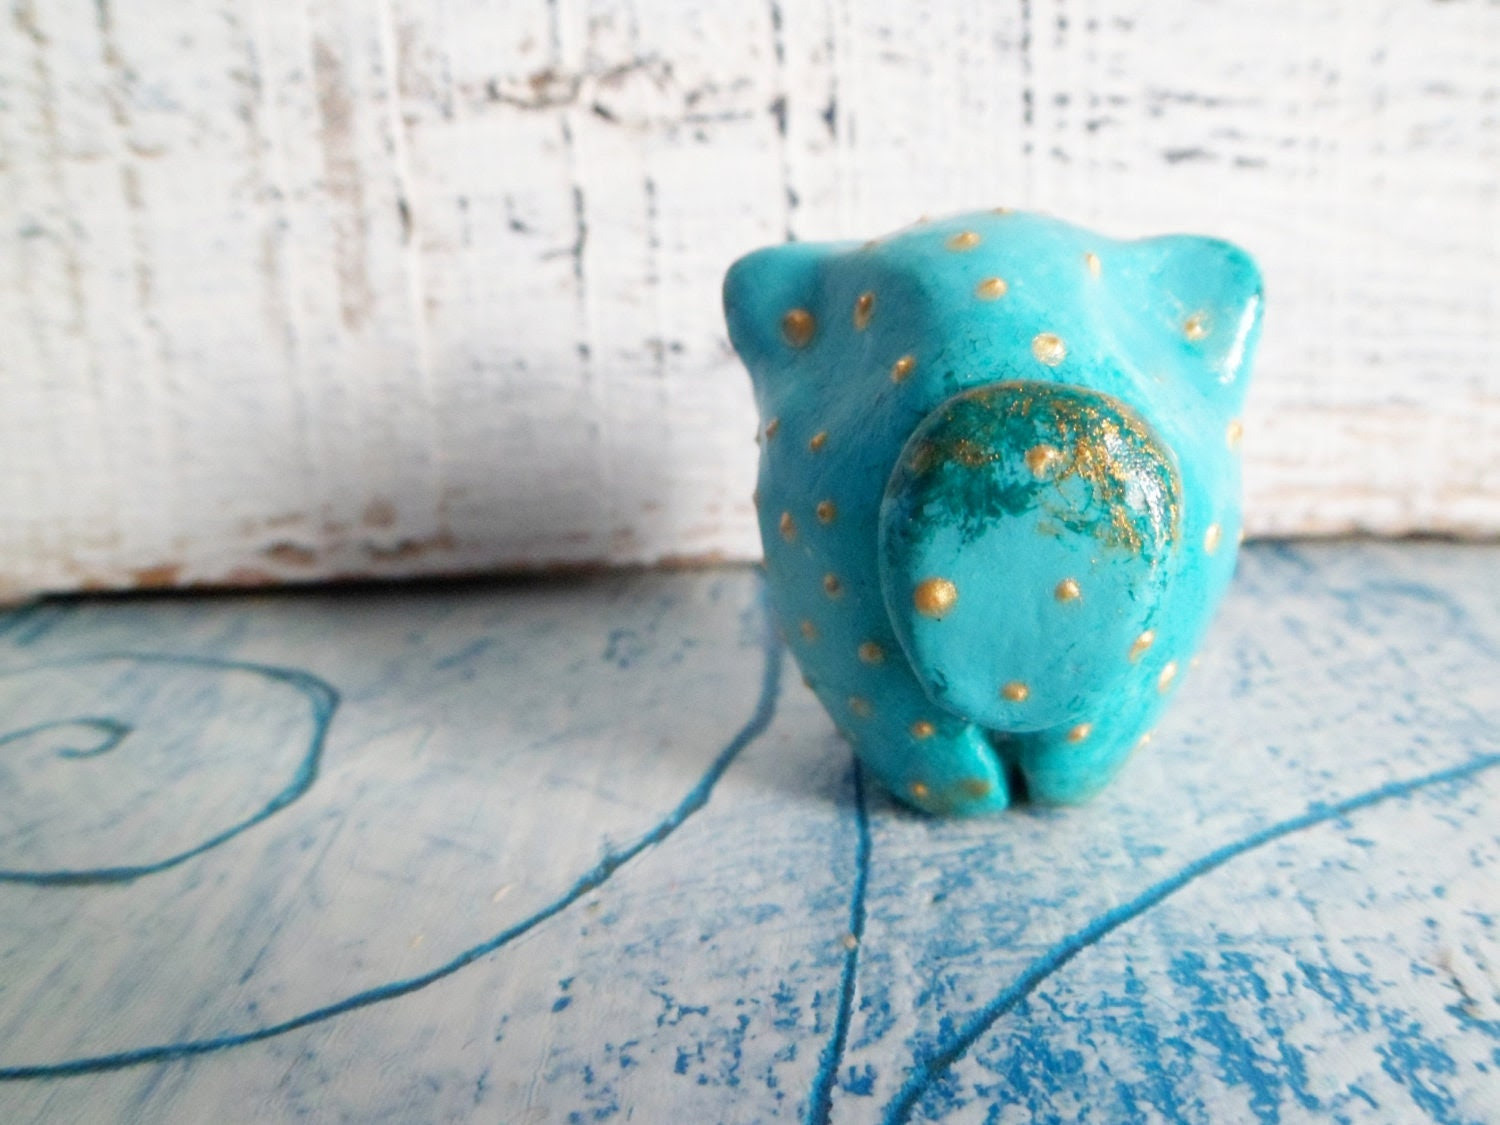 Mint blue cat air dry clay small animal figurine turquoise aqua green polka dot - HandyHappy